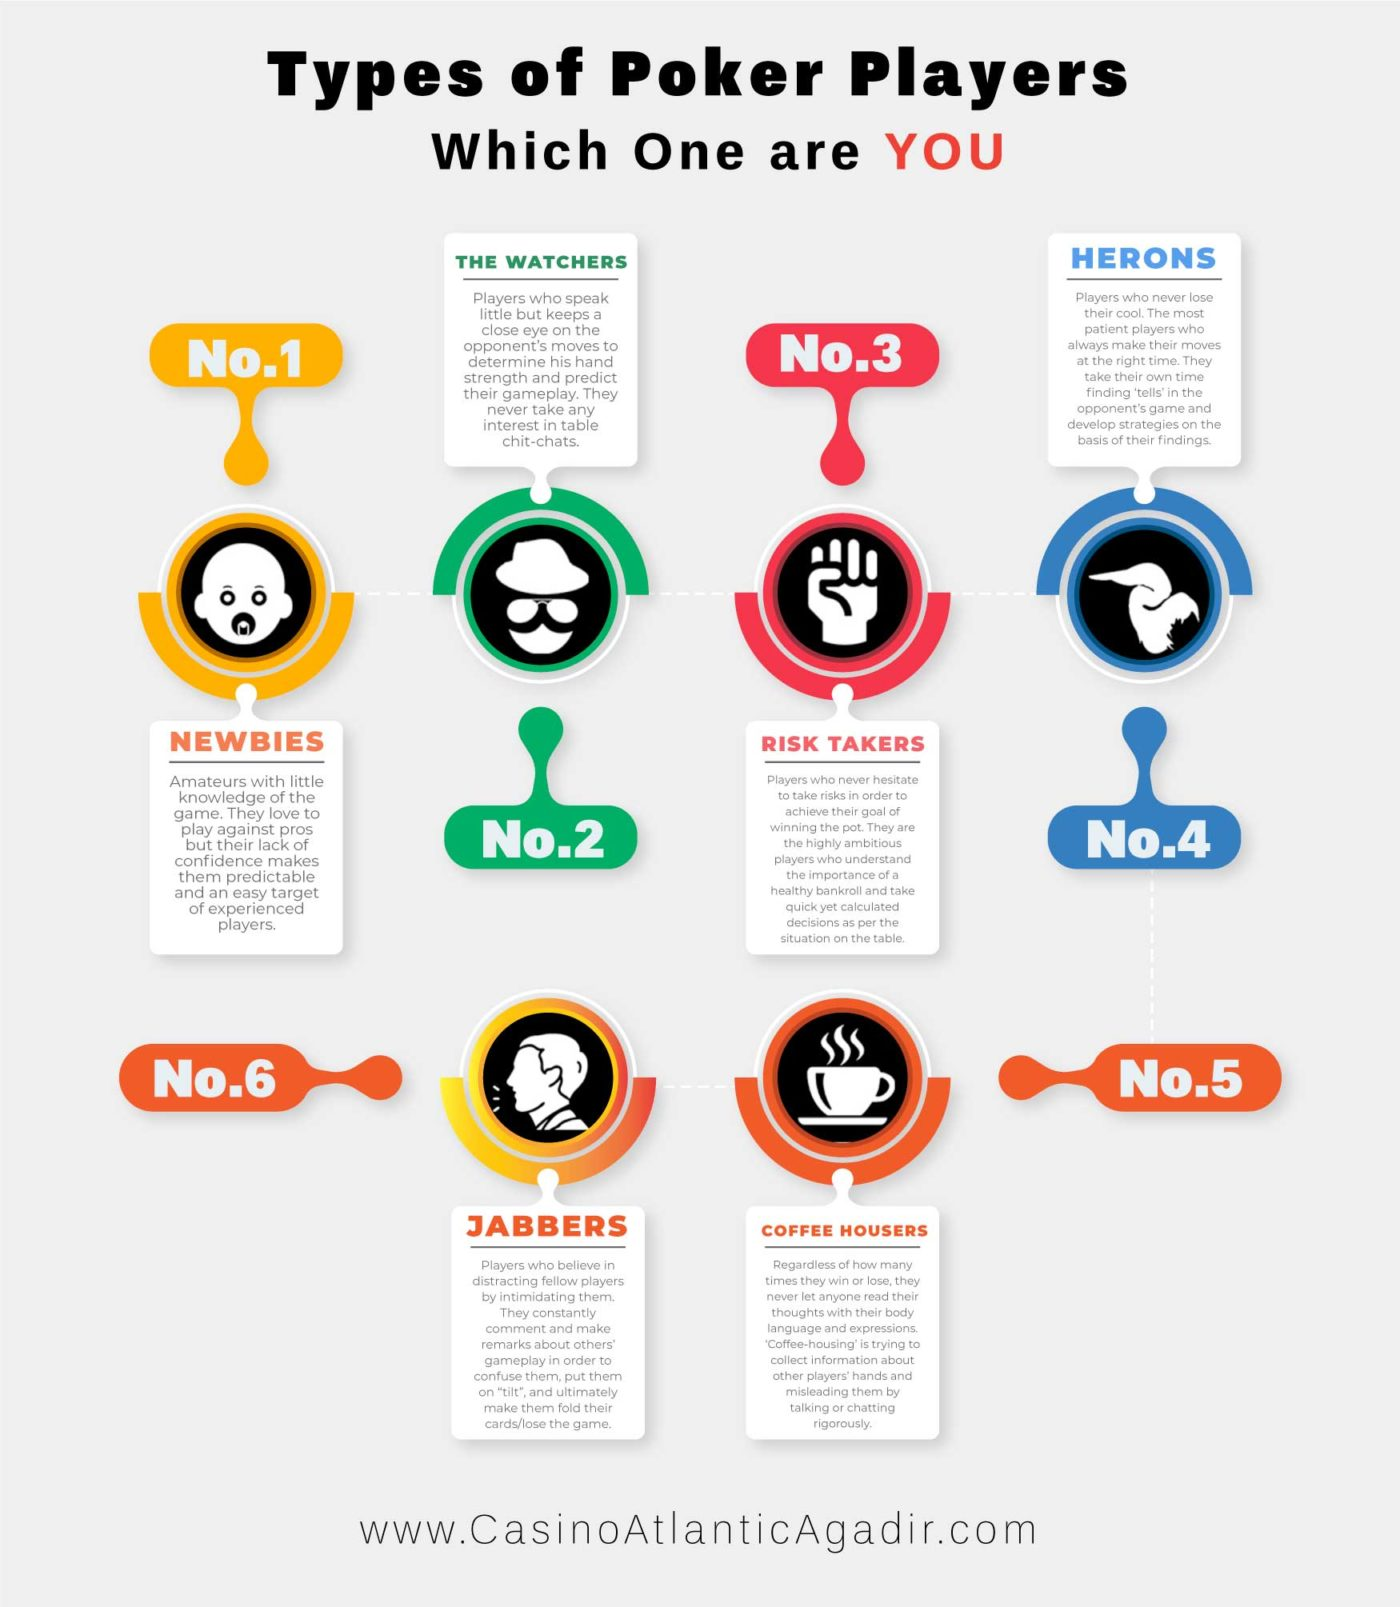 Types of Poker Players – Which One are You